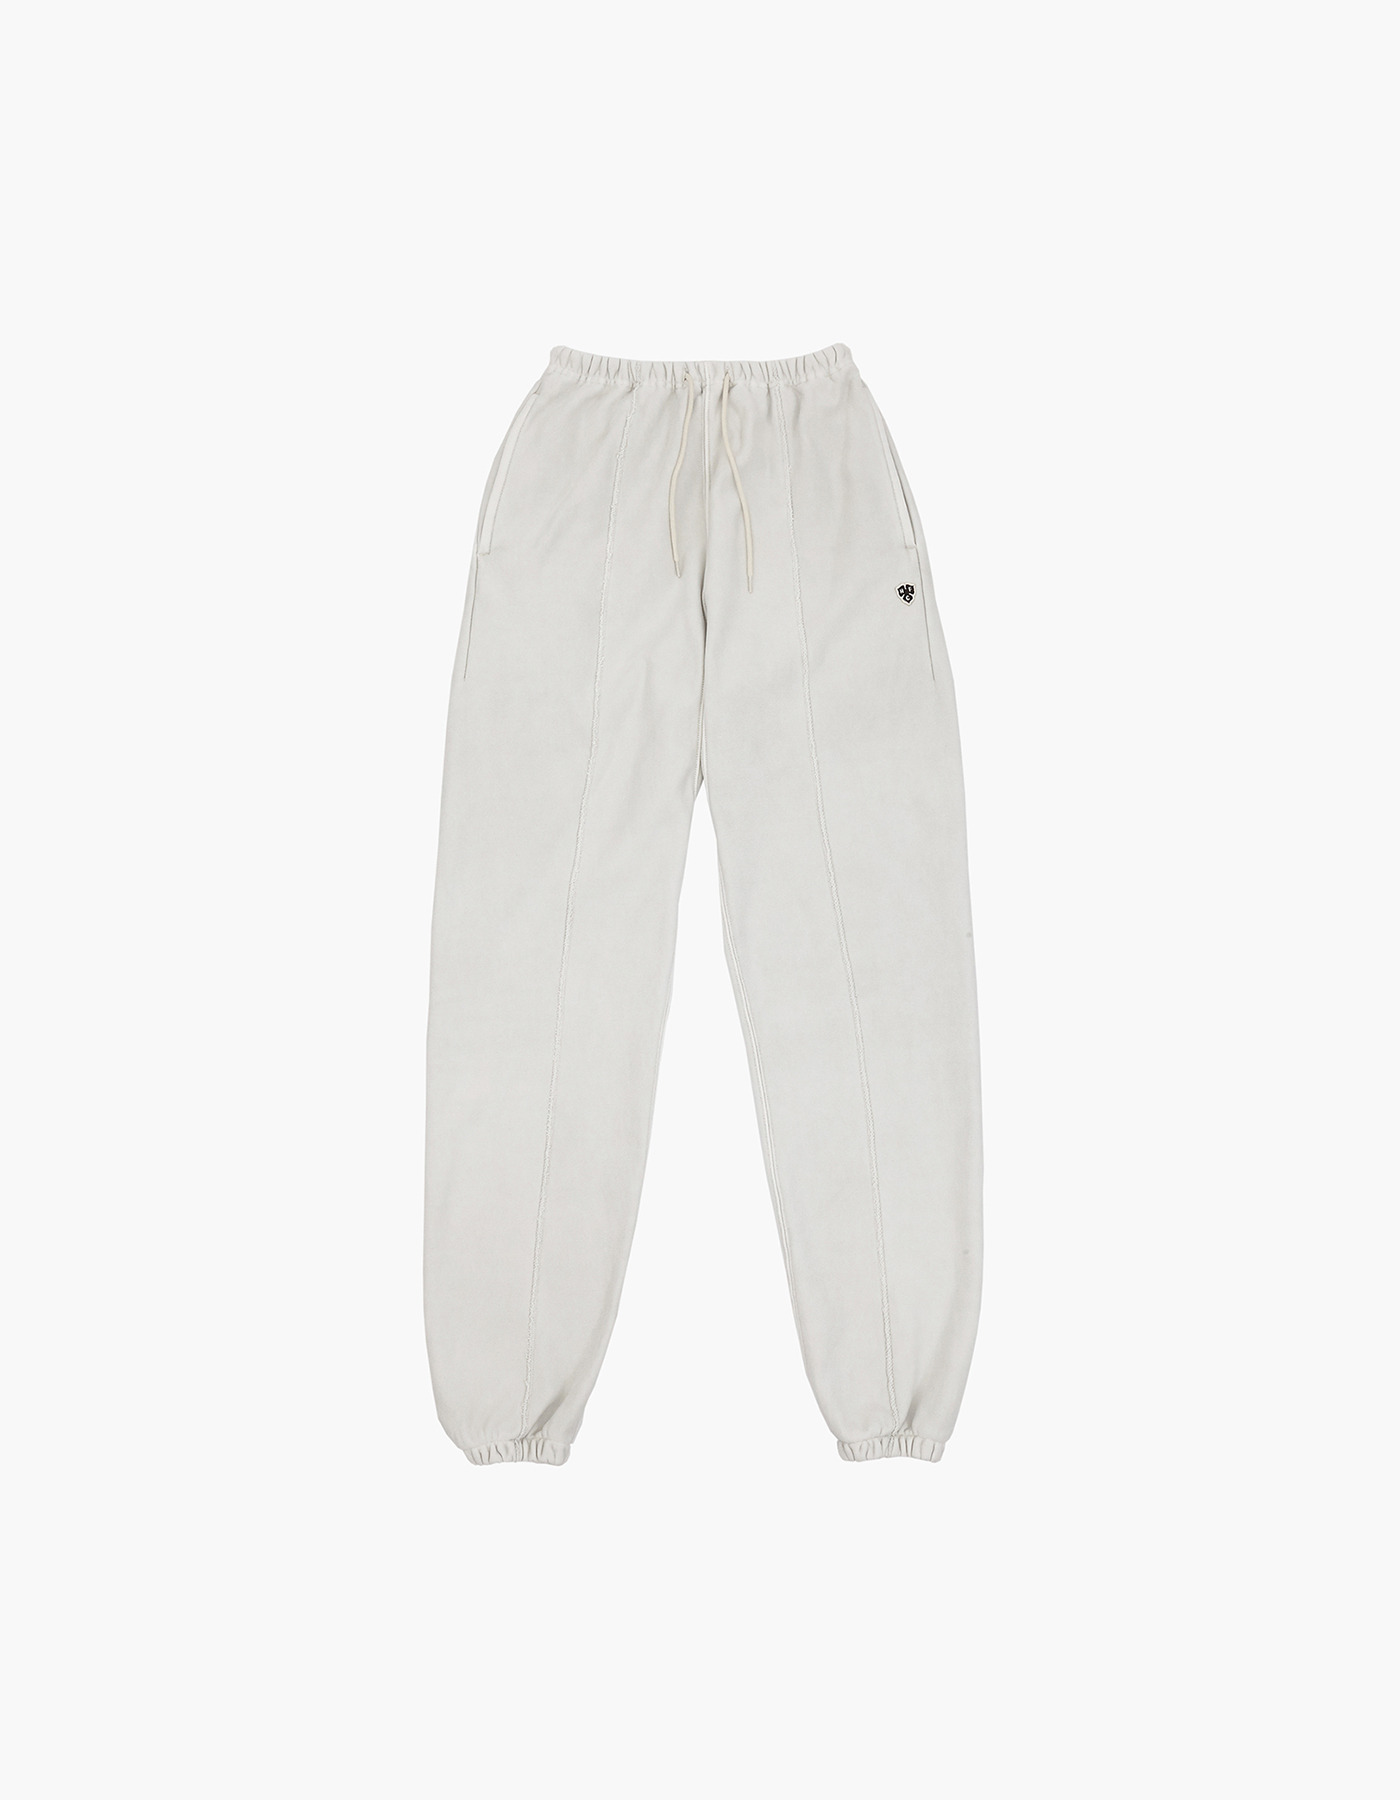 221 PIGMENT SWEATPANTS / LIGHT GREY